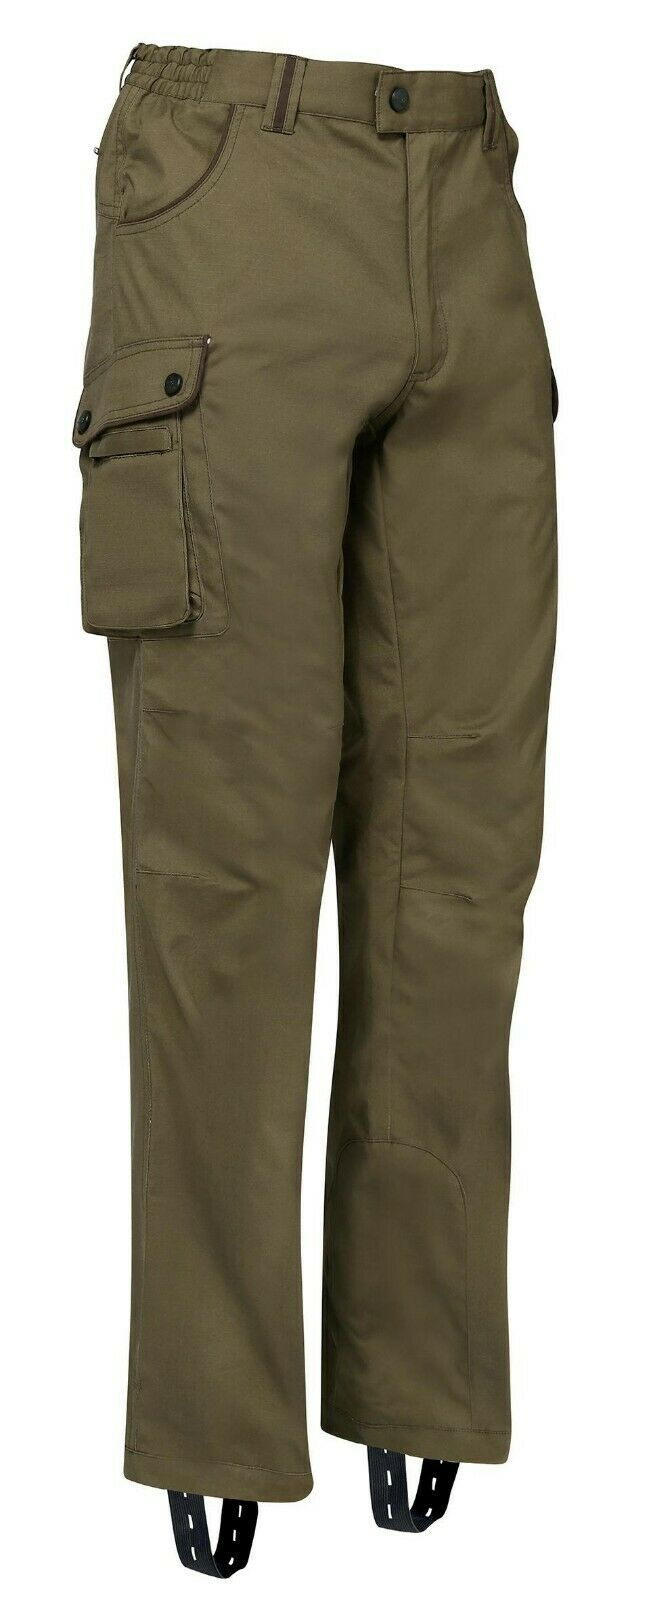 Verney Carron Grouse Trousers Men's Stretch Walking Country Hunting Shooting